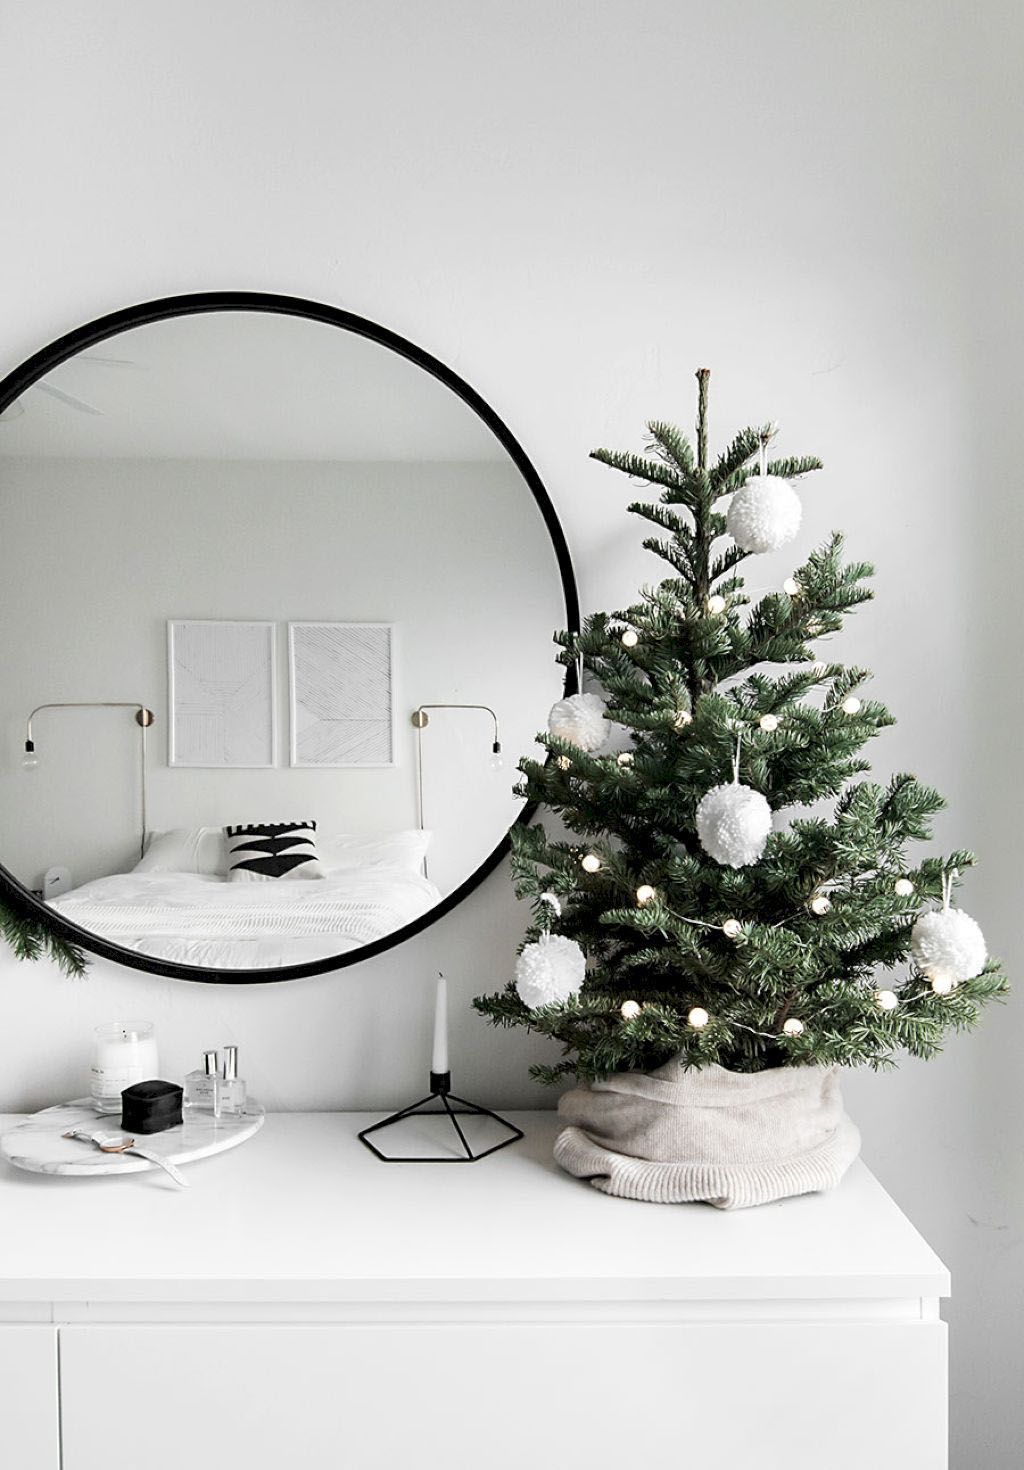 15 Best Apartment Decorating Ideas and Techniques #smallapartmentchristmasdecor